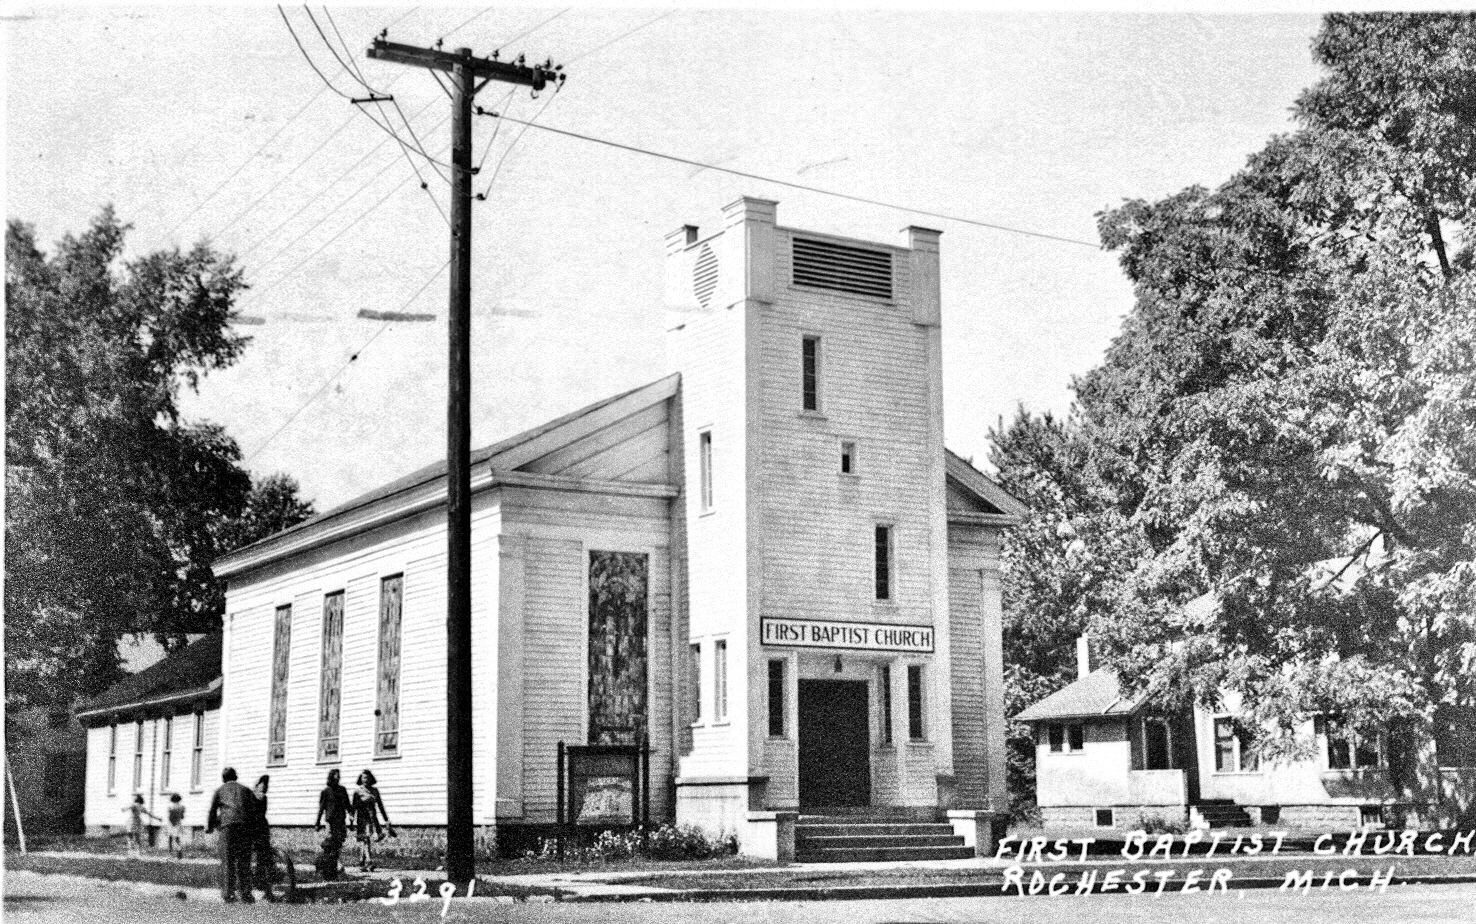 First Baptist Church of Rochester, south and east elevations, ca. 1940